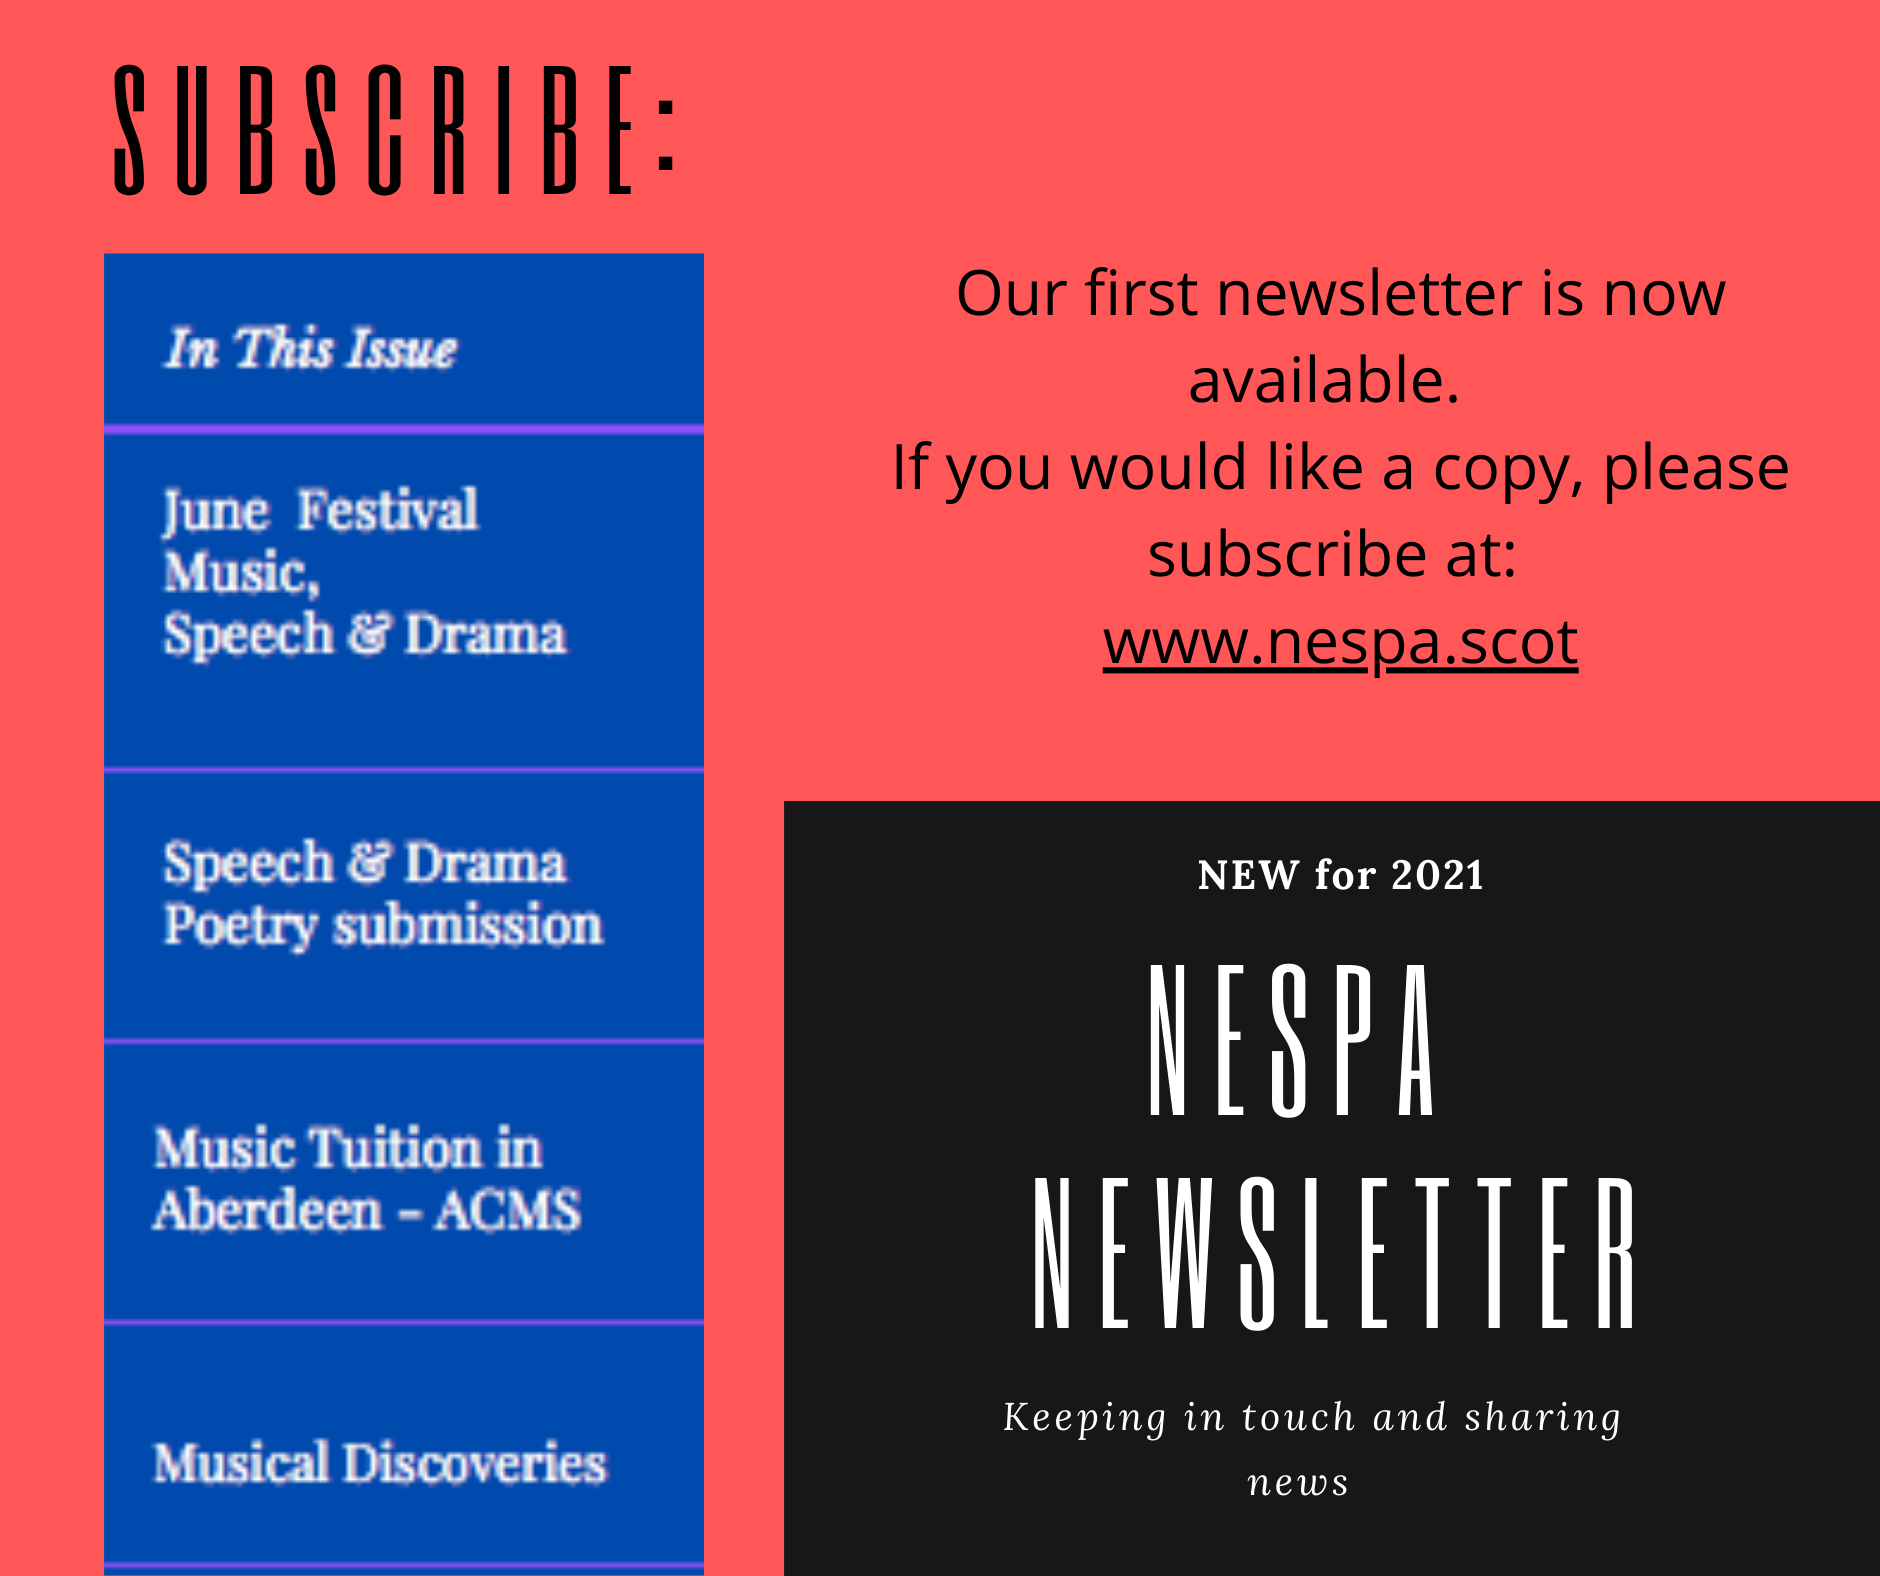 FIRST NEWSLETTER NOW AVAILABLE